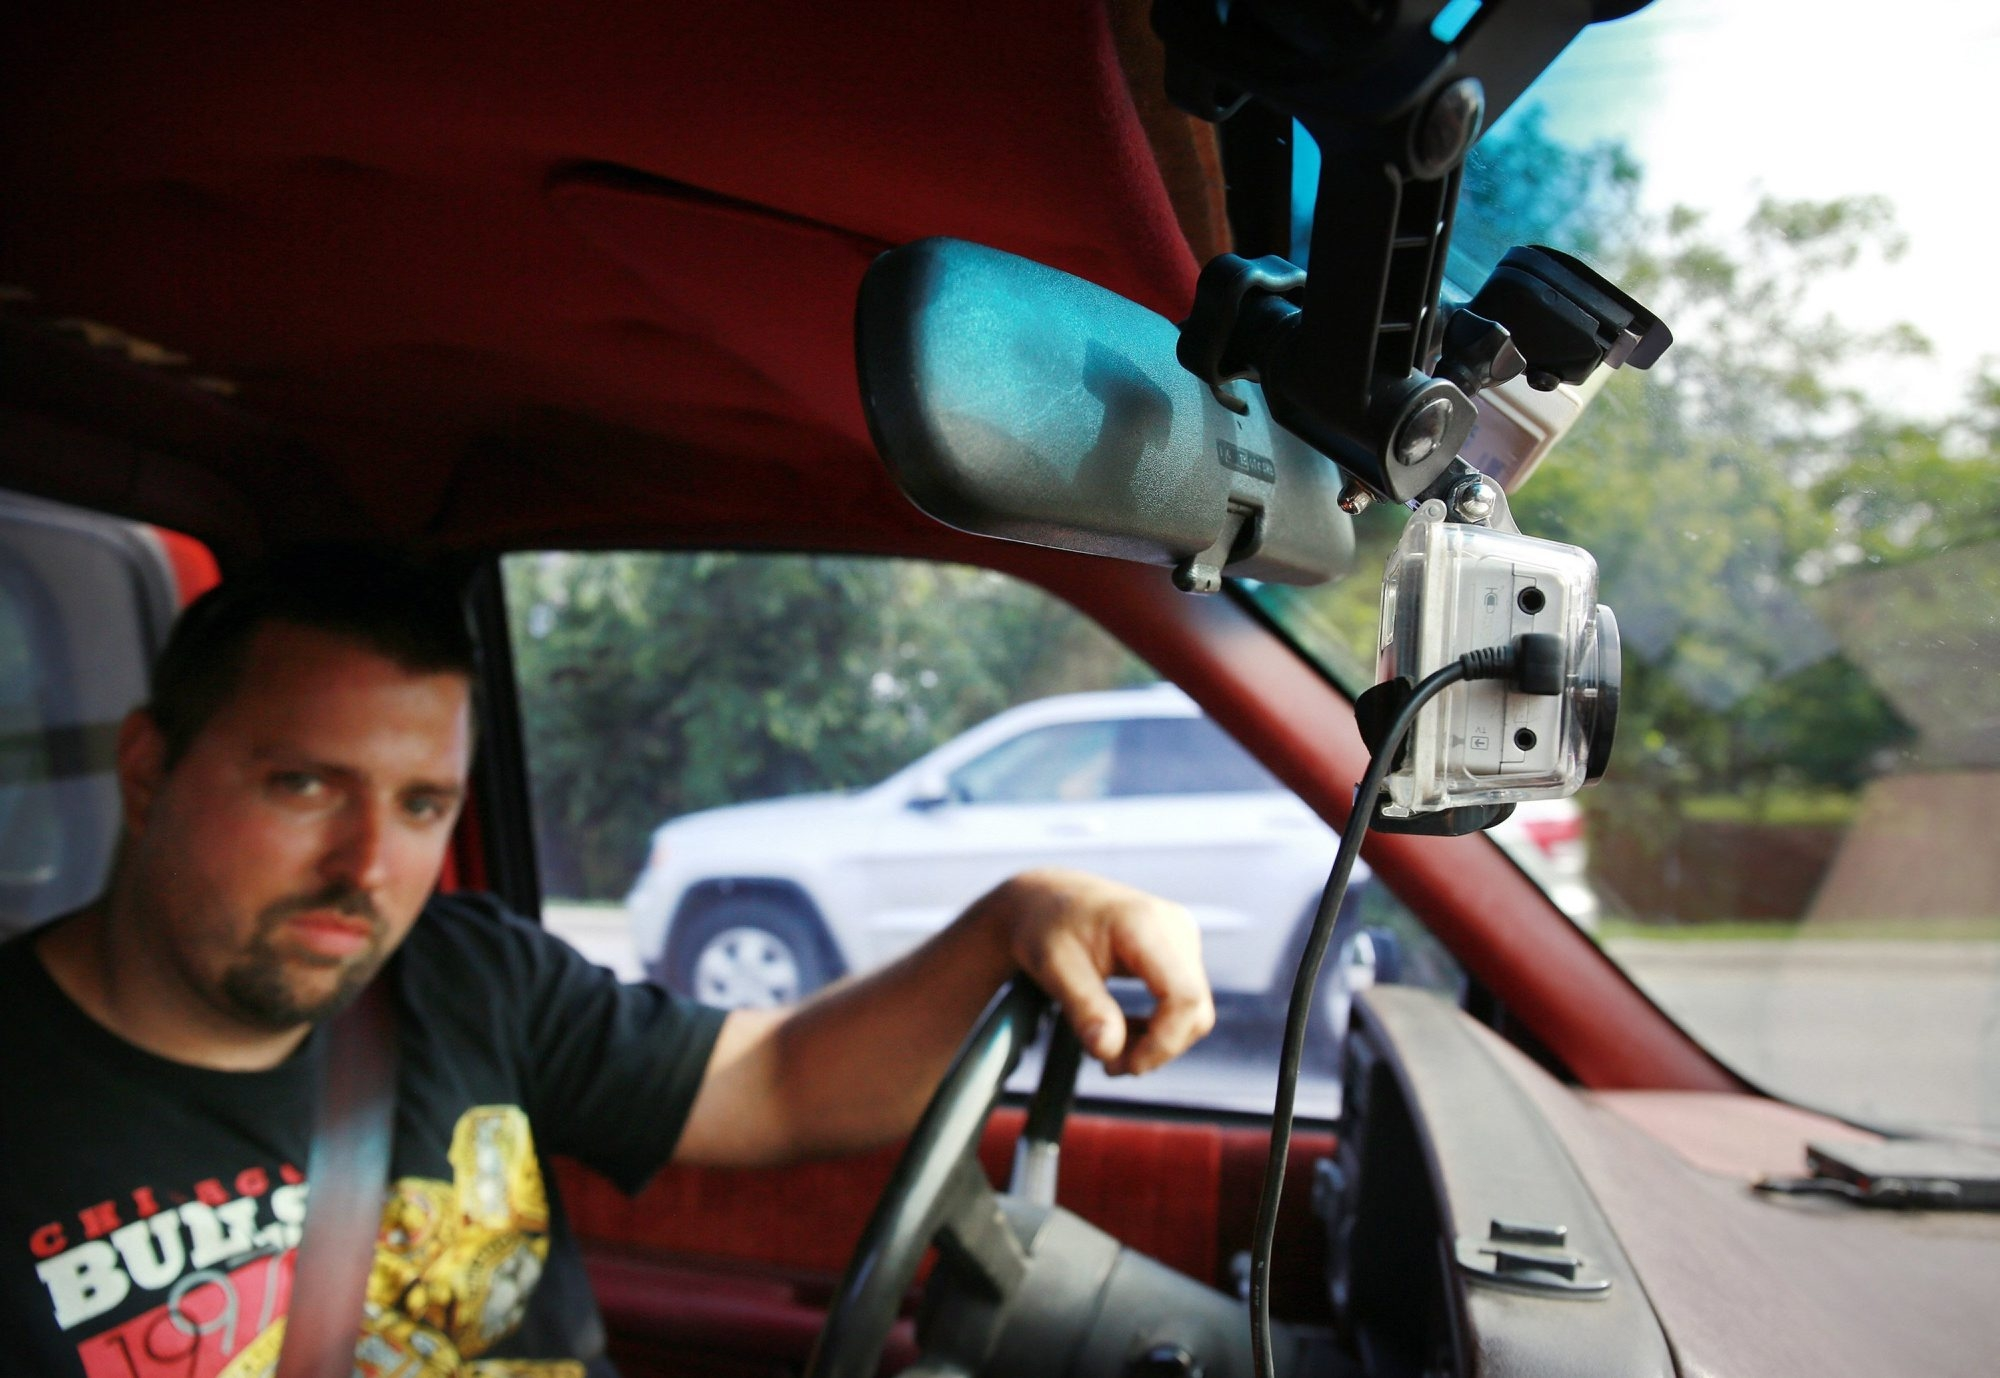 Joe Elbaor drives home from work with his dashboard camera mounted below the rearview mirror of his truck last month in Itasca, Ill. Elbaor uses the camera to record videos of bad driving and then posts them on his YouTube account.